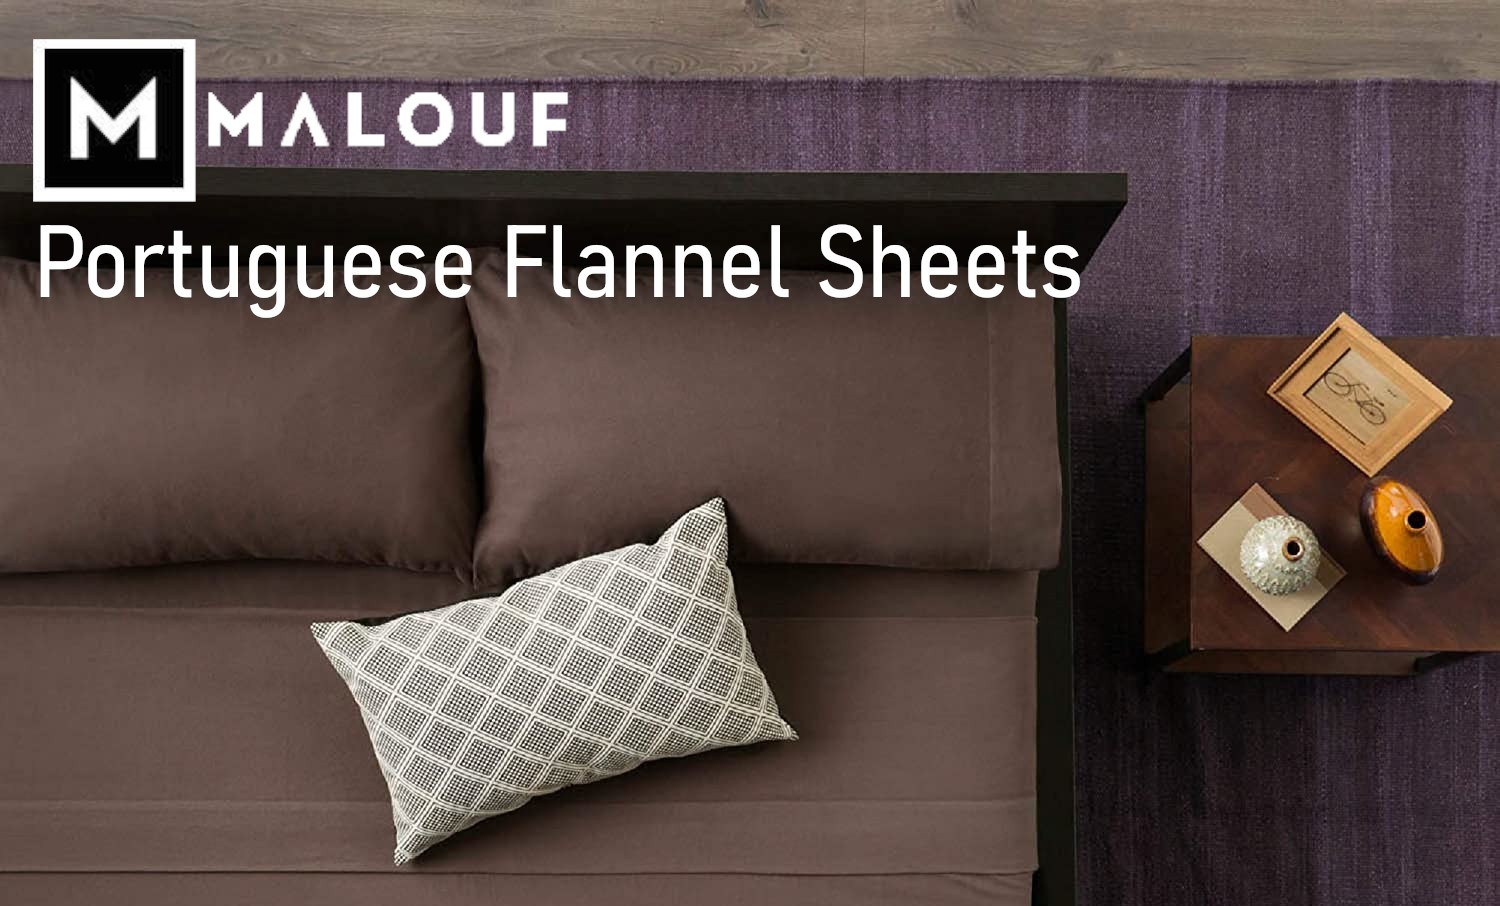 malouf portuguese flannel sheets review